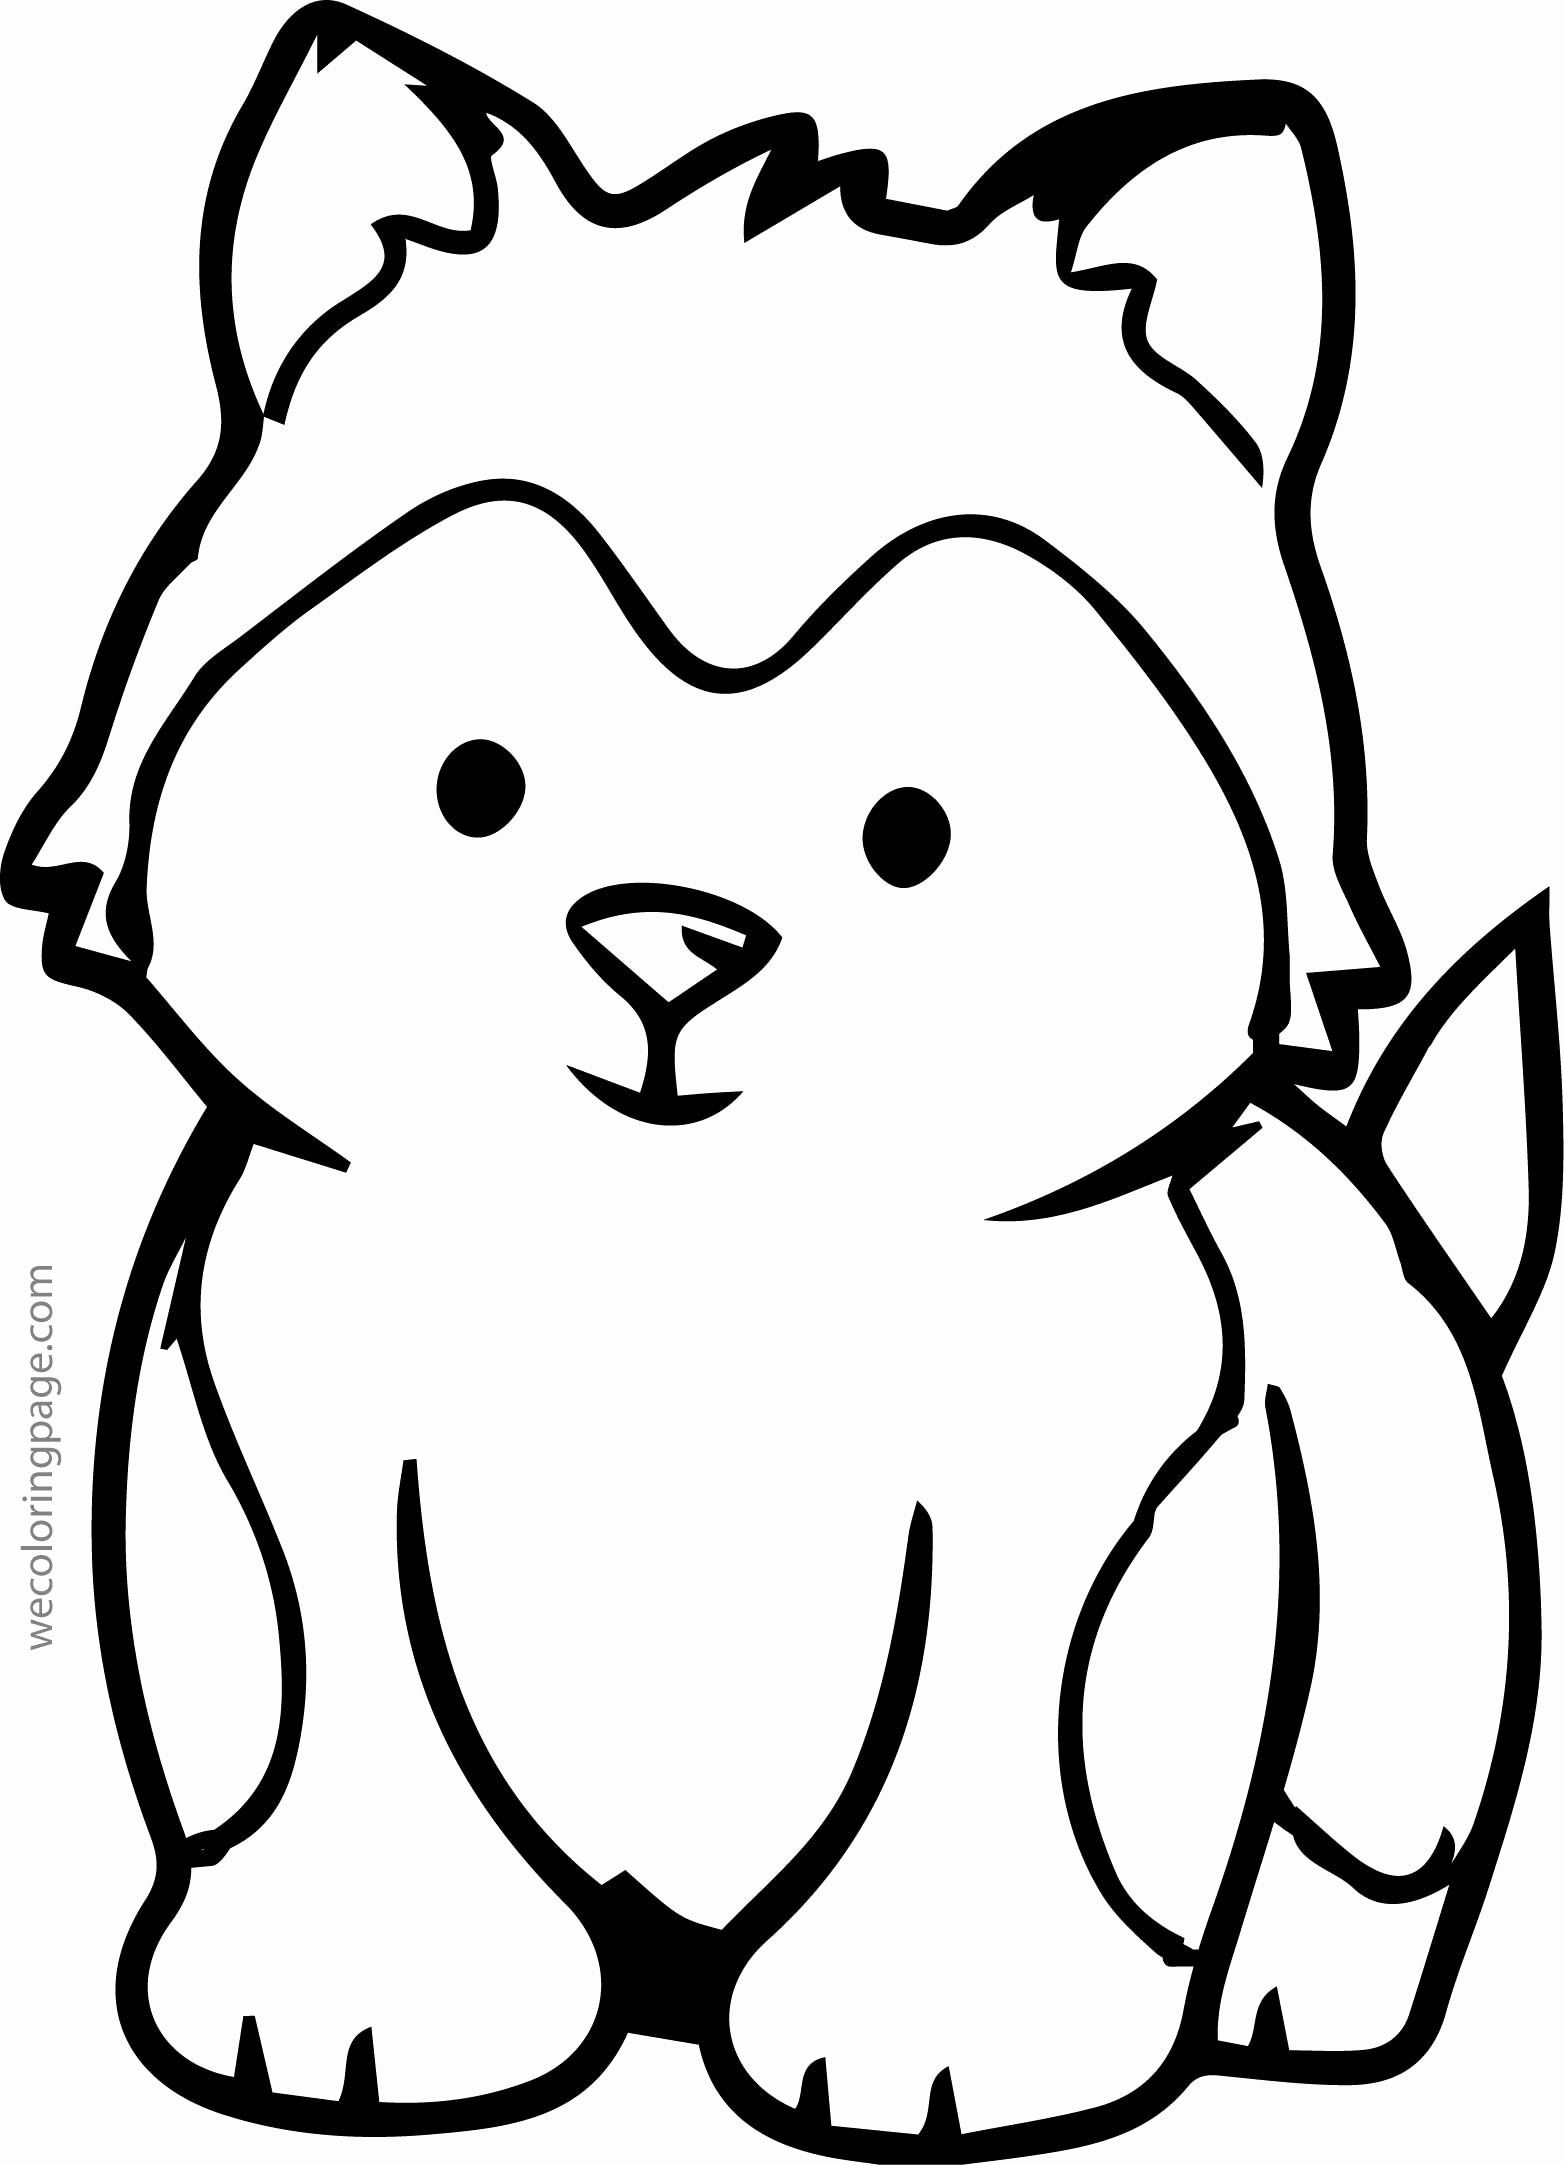 Cute Baby Fox Coloring Pages New Cool Husky Baby Coloring Page Dog Coloring Page Farm Animal Coloring Pages Puppy Coloring Pages [ 2165 x 1564 Pixel ]